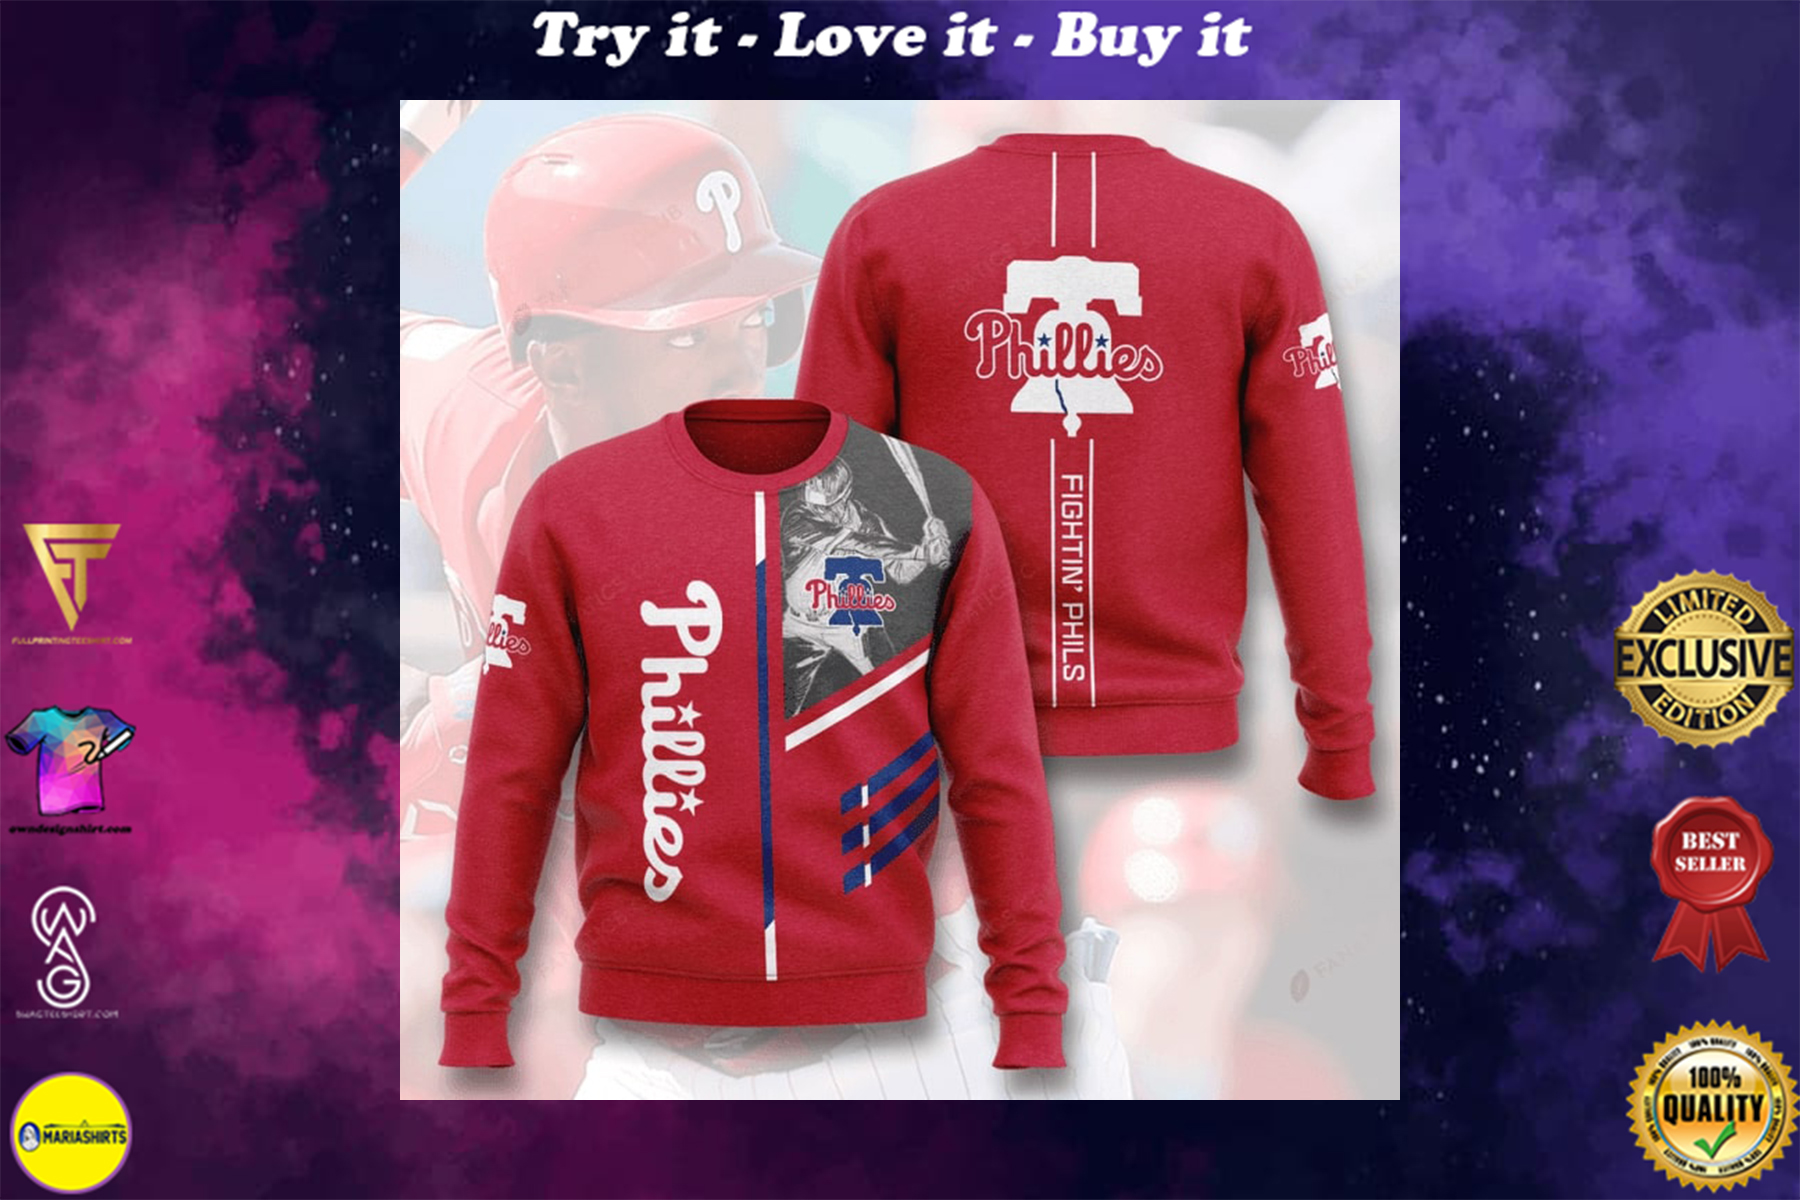 [special edition] philadelphia phillies fightin phils full printing ugly sweater - maria